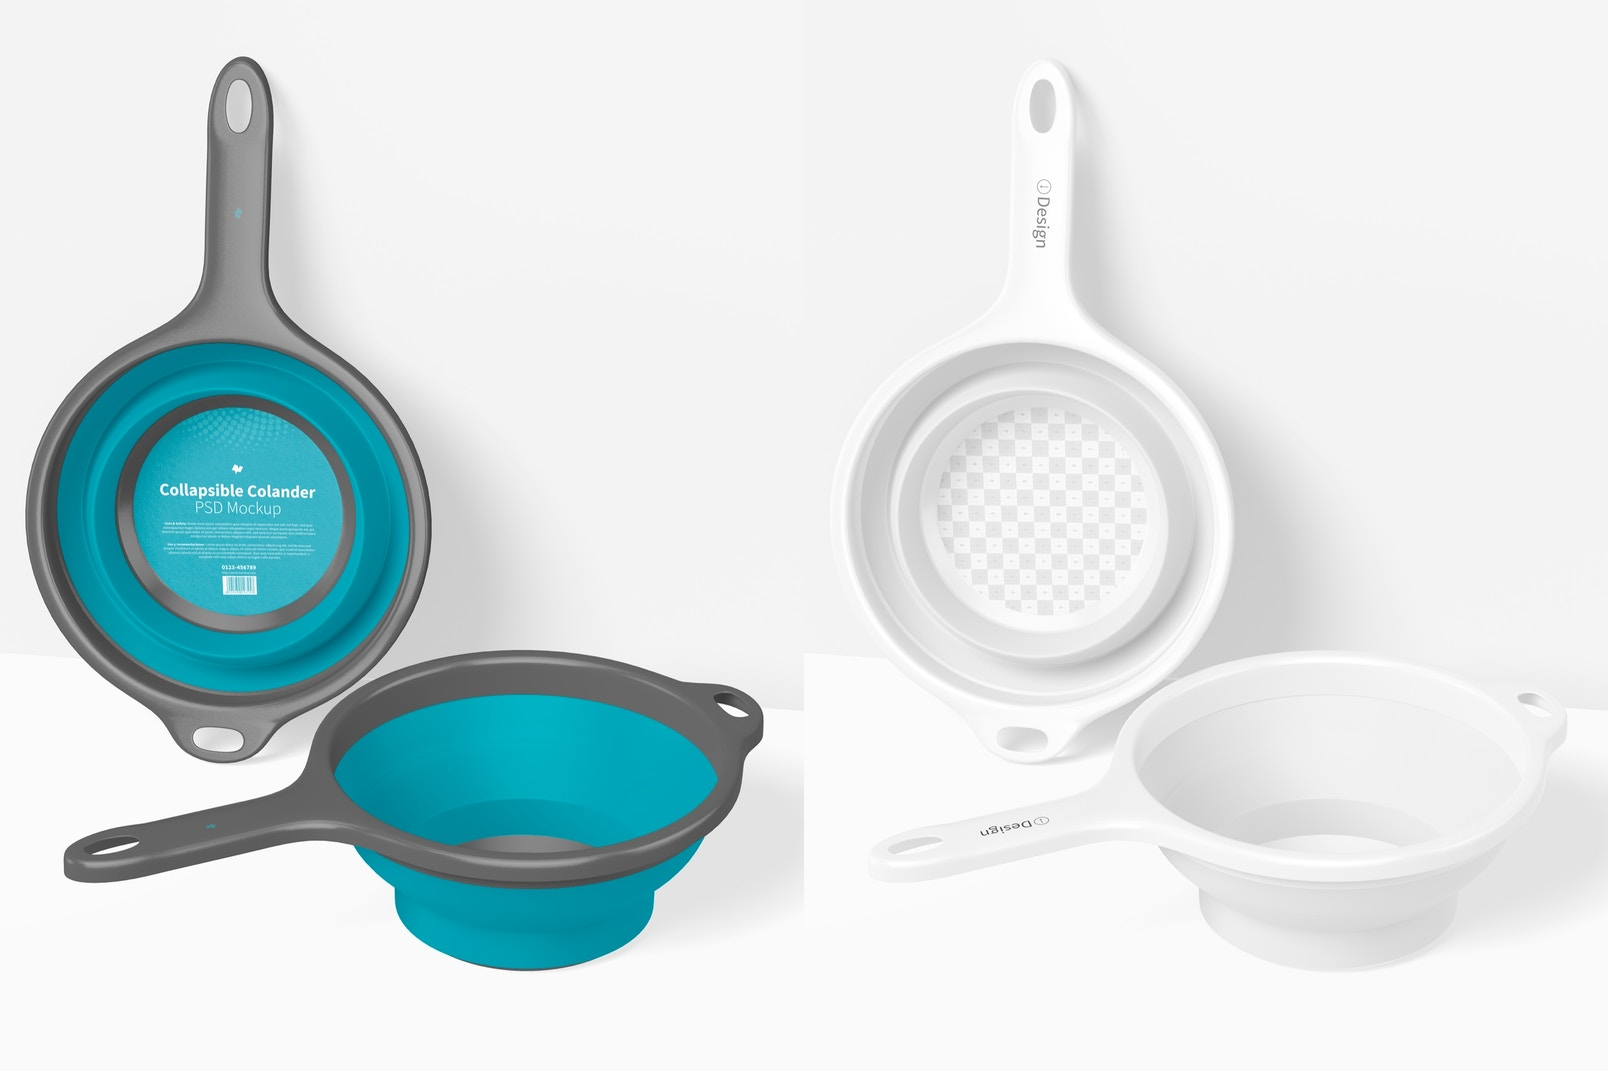 Collapsible Colanders Mockup, Standing and Dropped